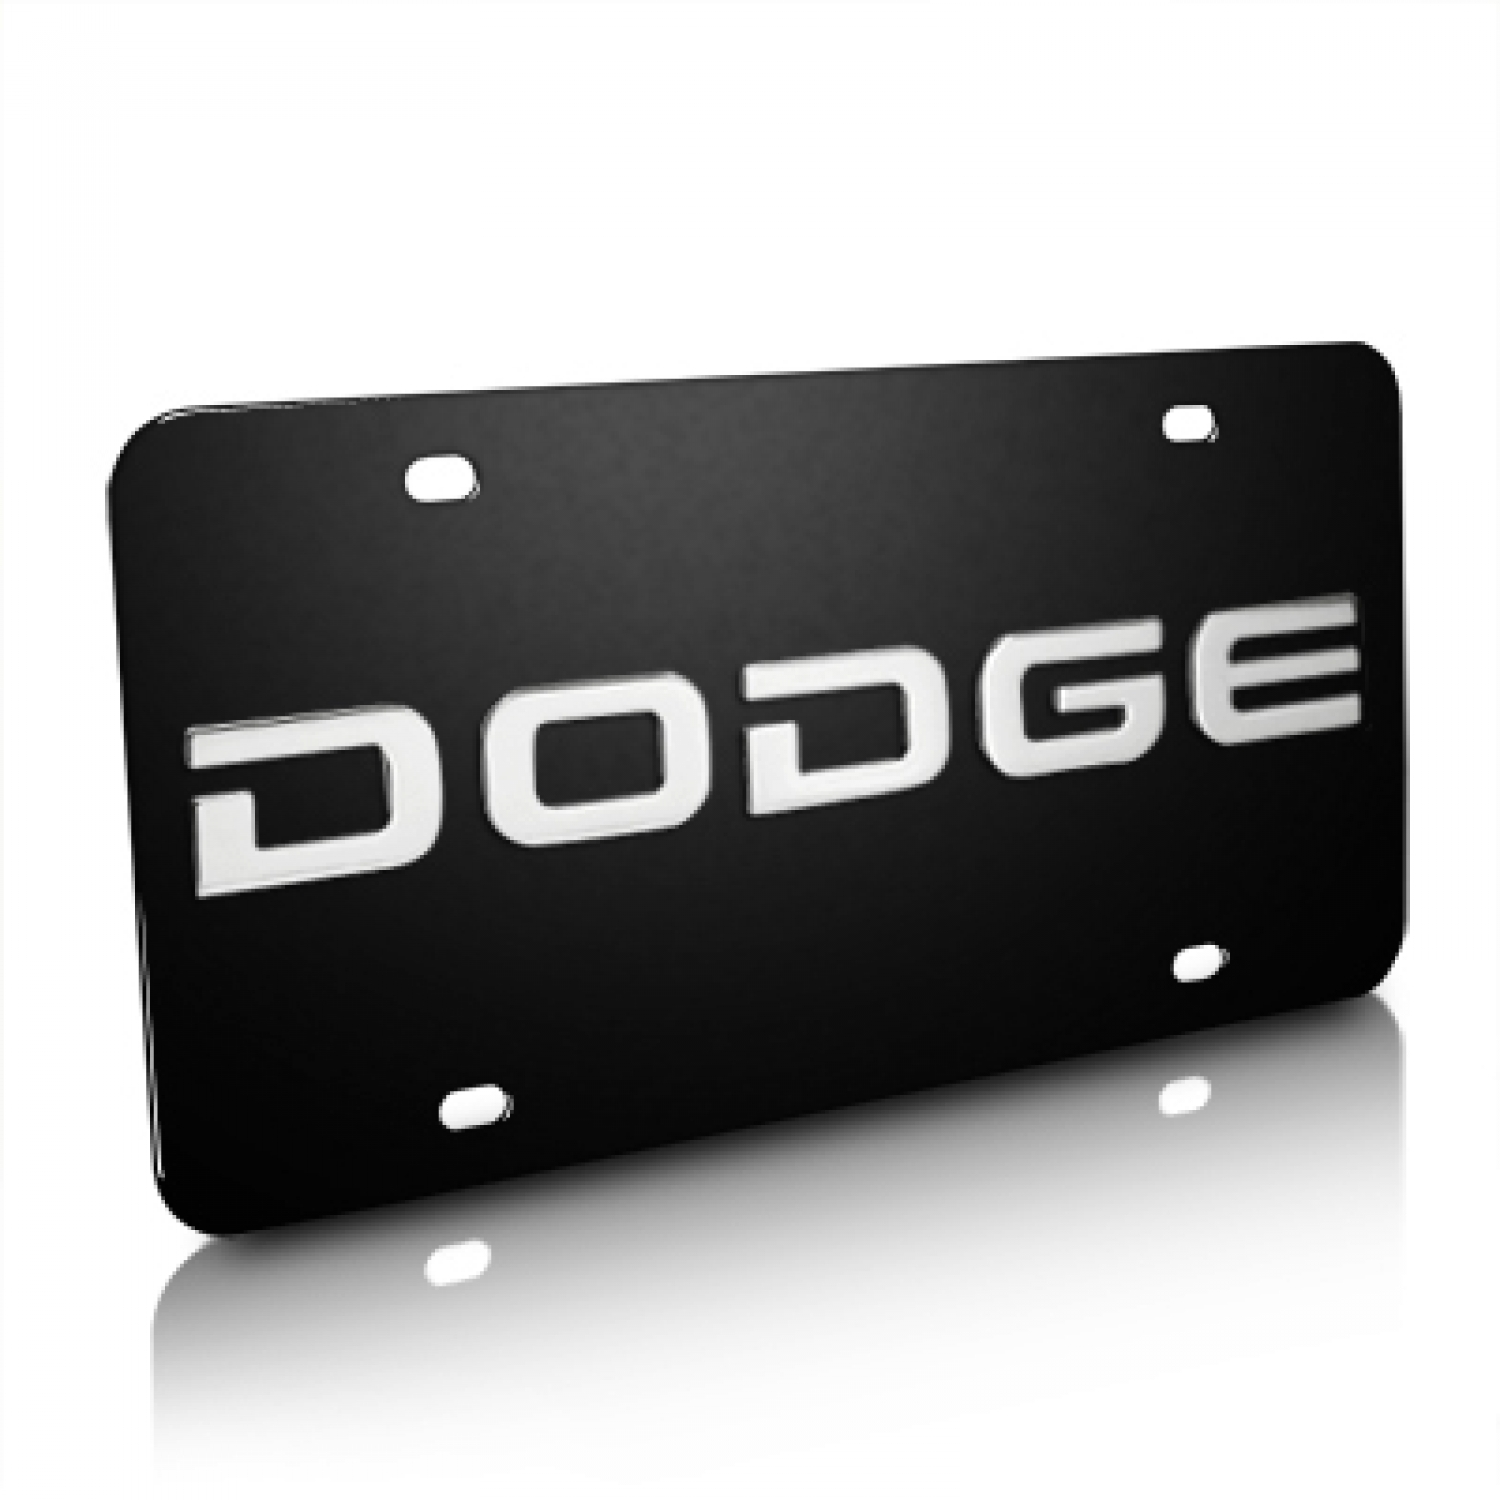 Dodge Nameplate 3D Logo Black Stainless Steel License Plate